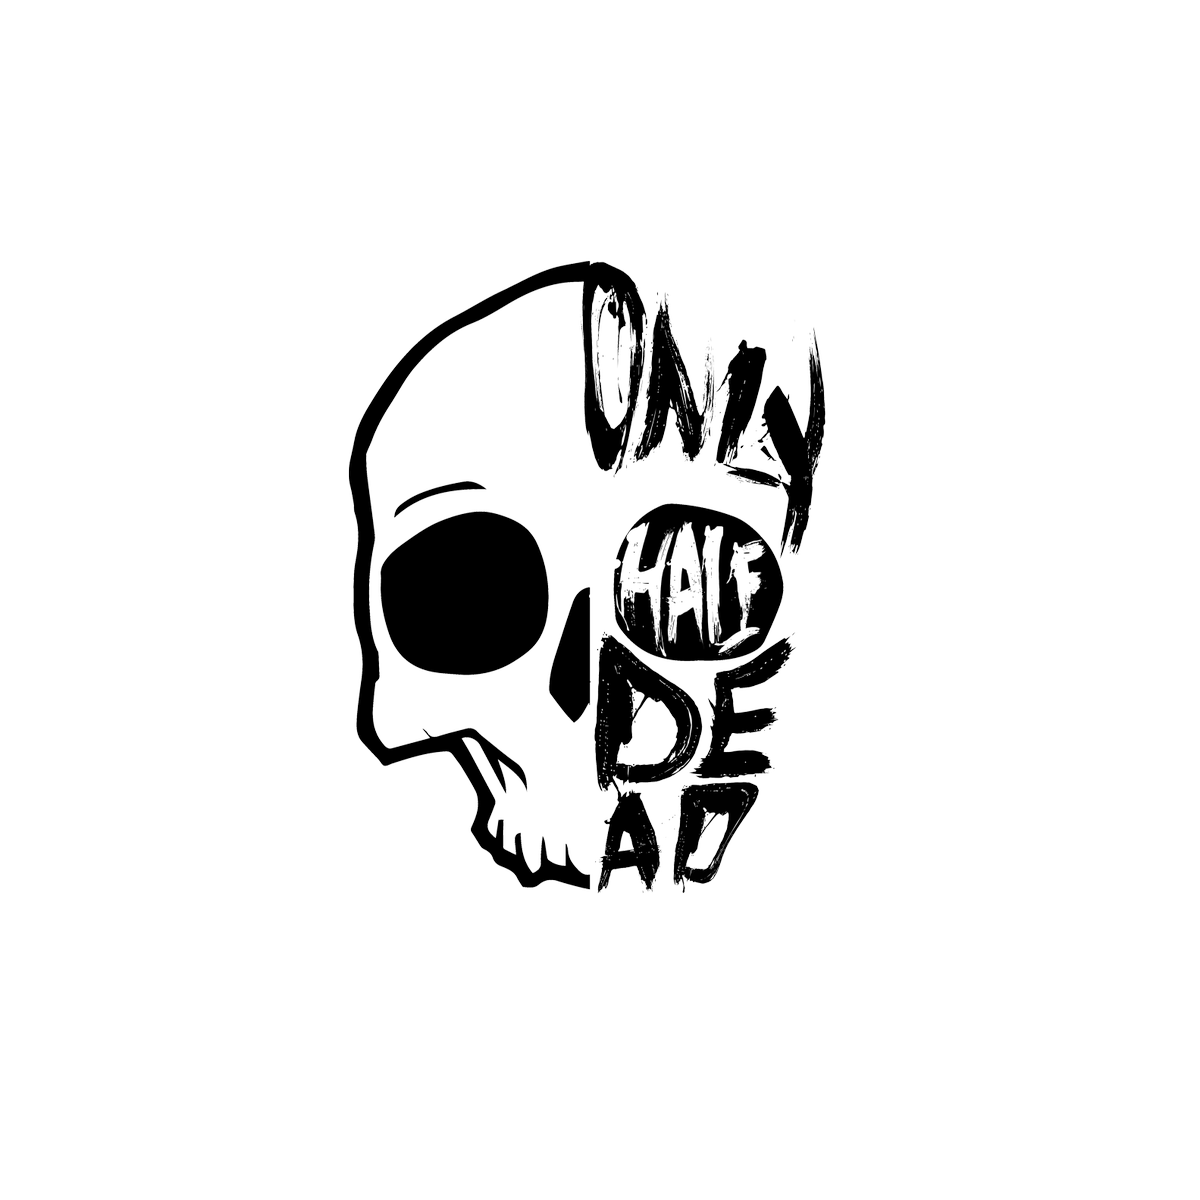 Typographic drawing creative. Nikhil mhatre on twitter